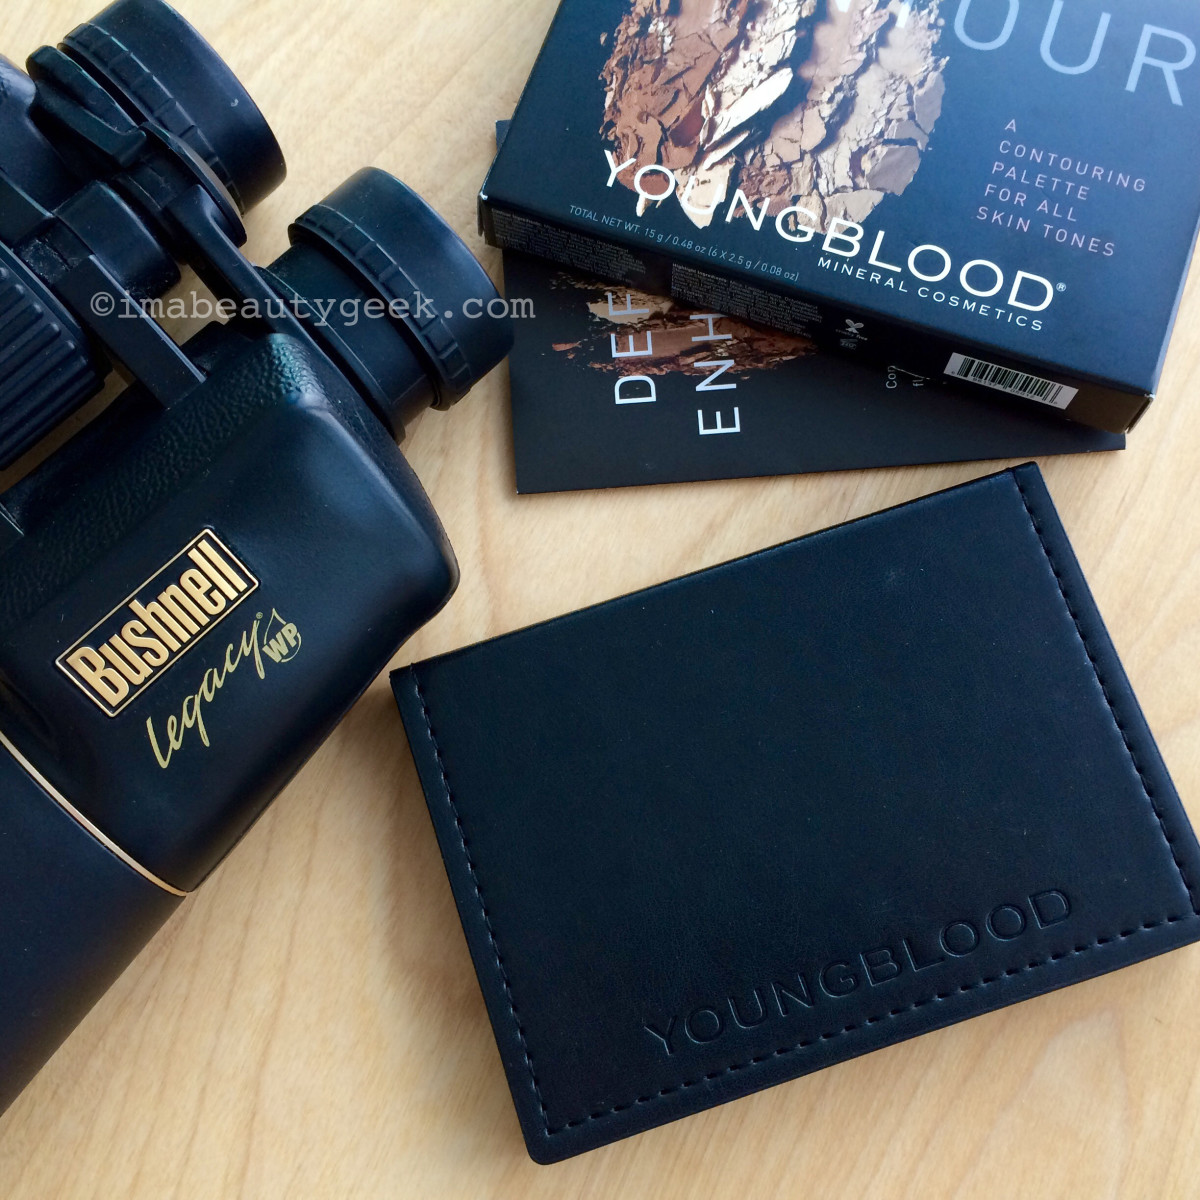 Youngblood Contour Palette and Bushnell Legacy WP binoculars... Fogo Island Inn